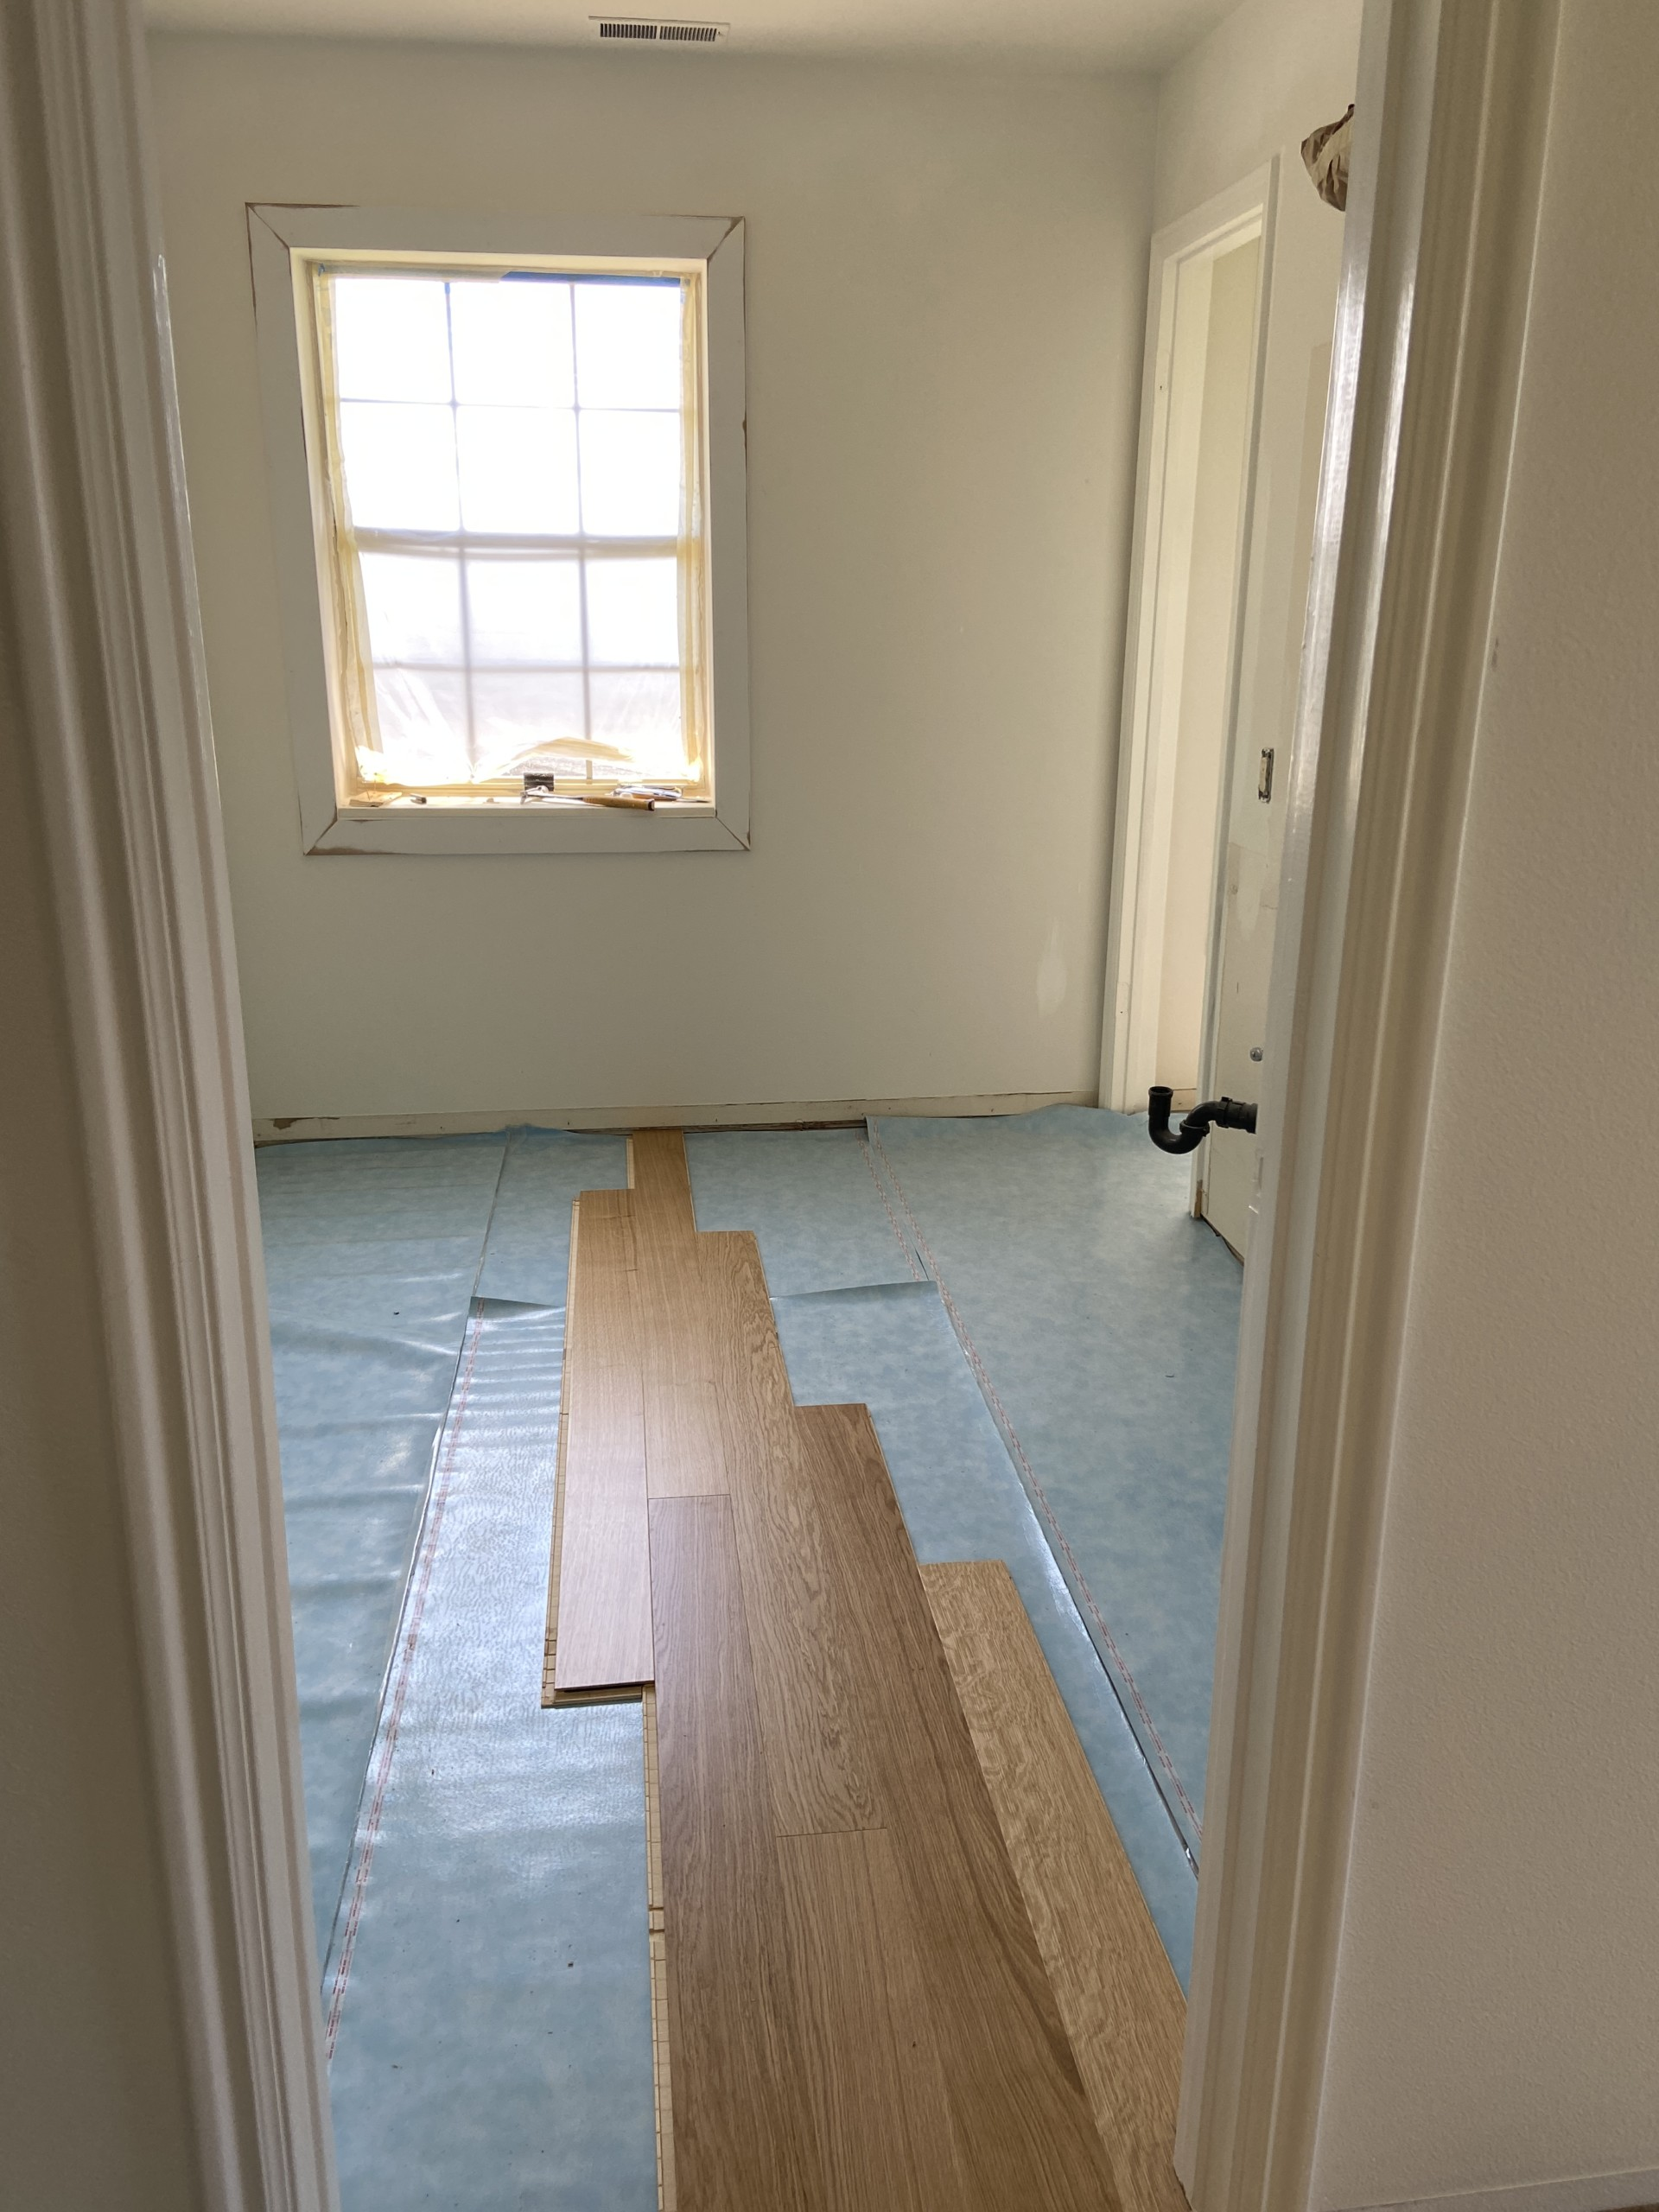 Vertical image of the bathroom. There's warm wooden flooring being laid over light blue plastic sheeting.